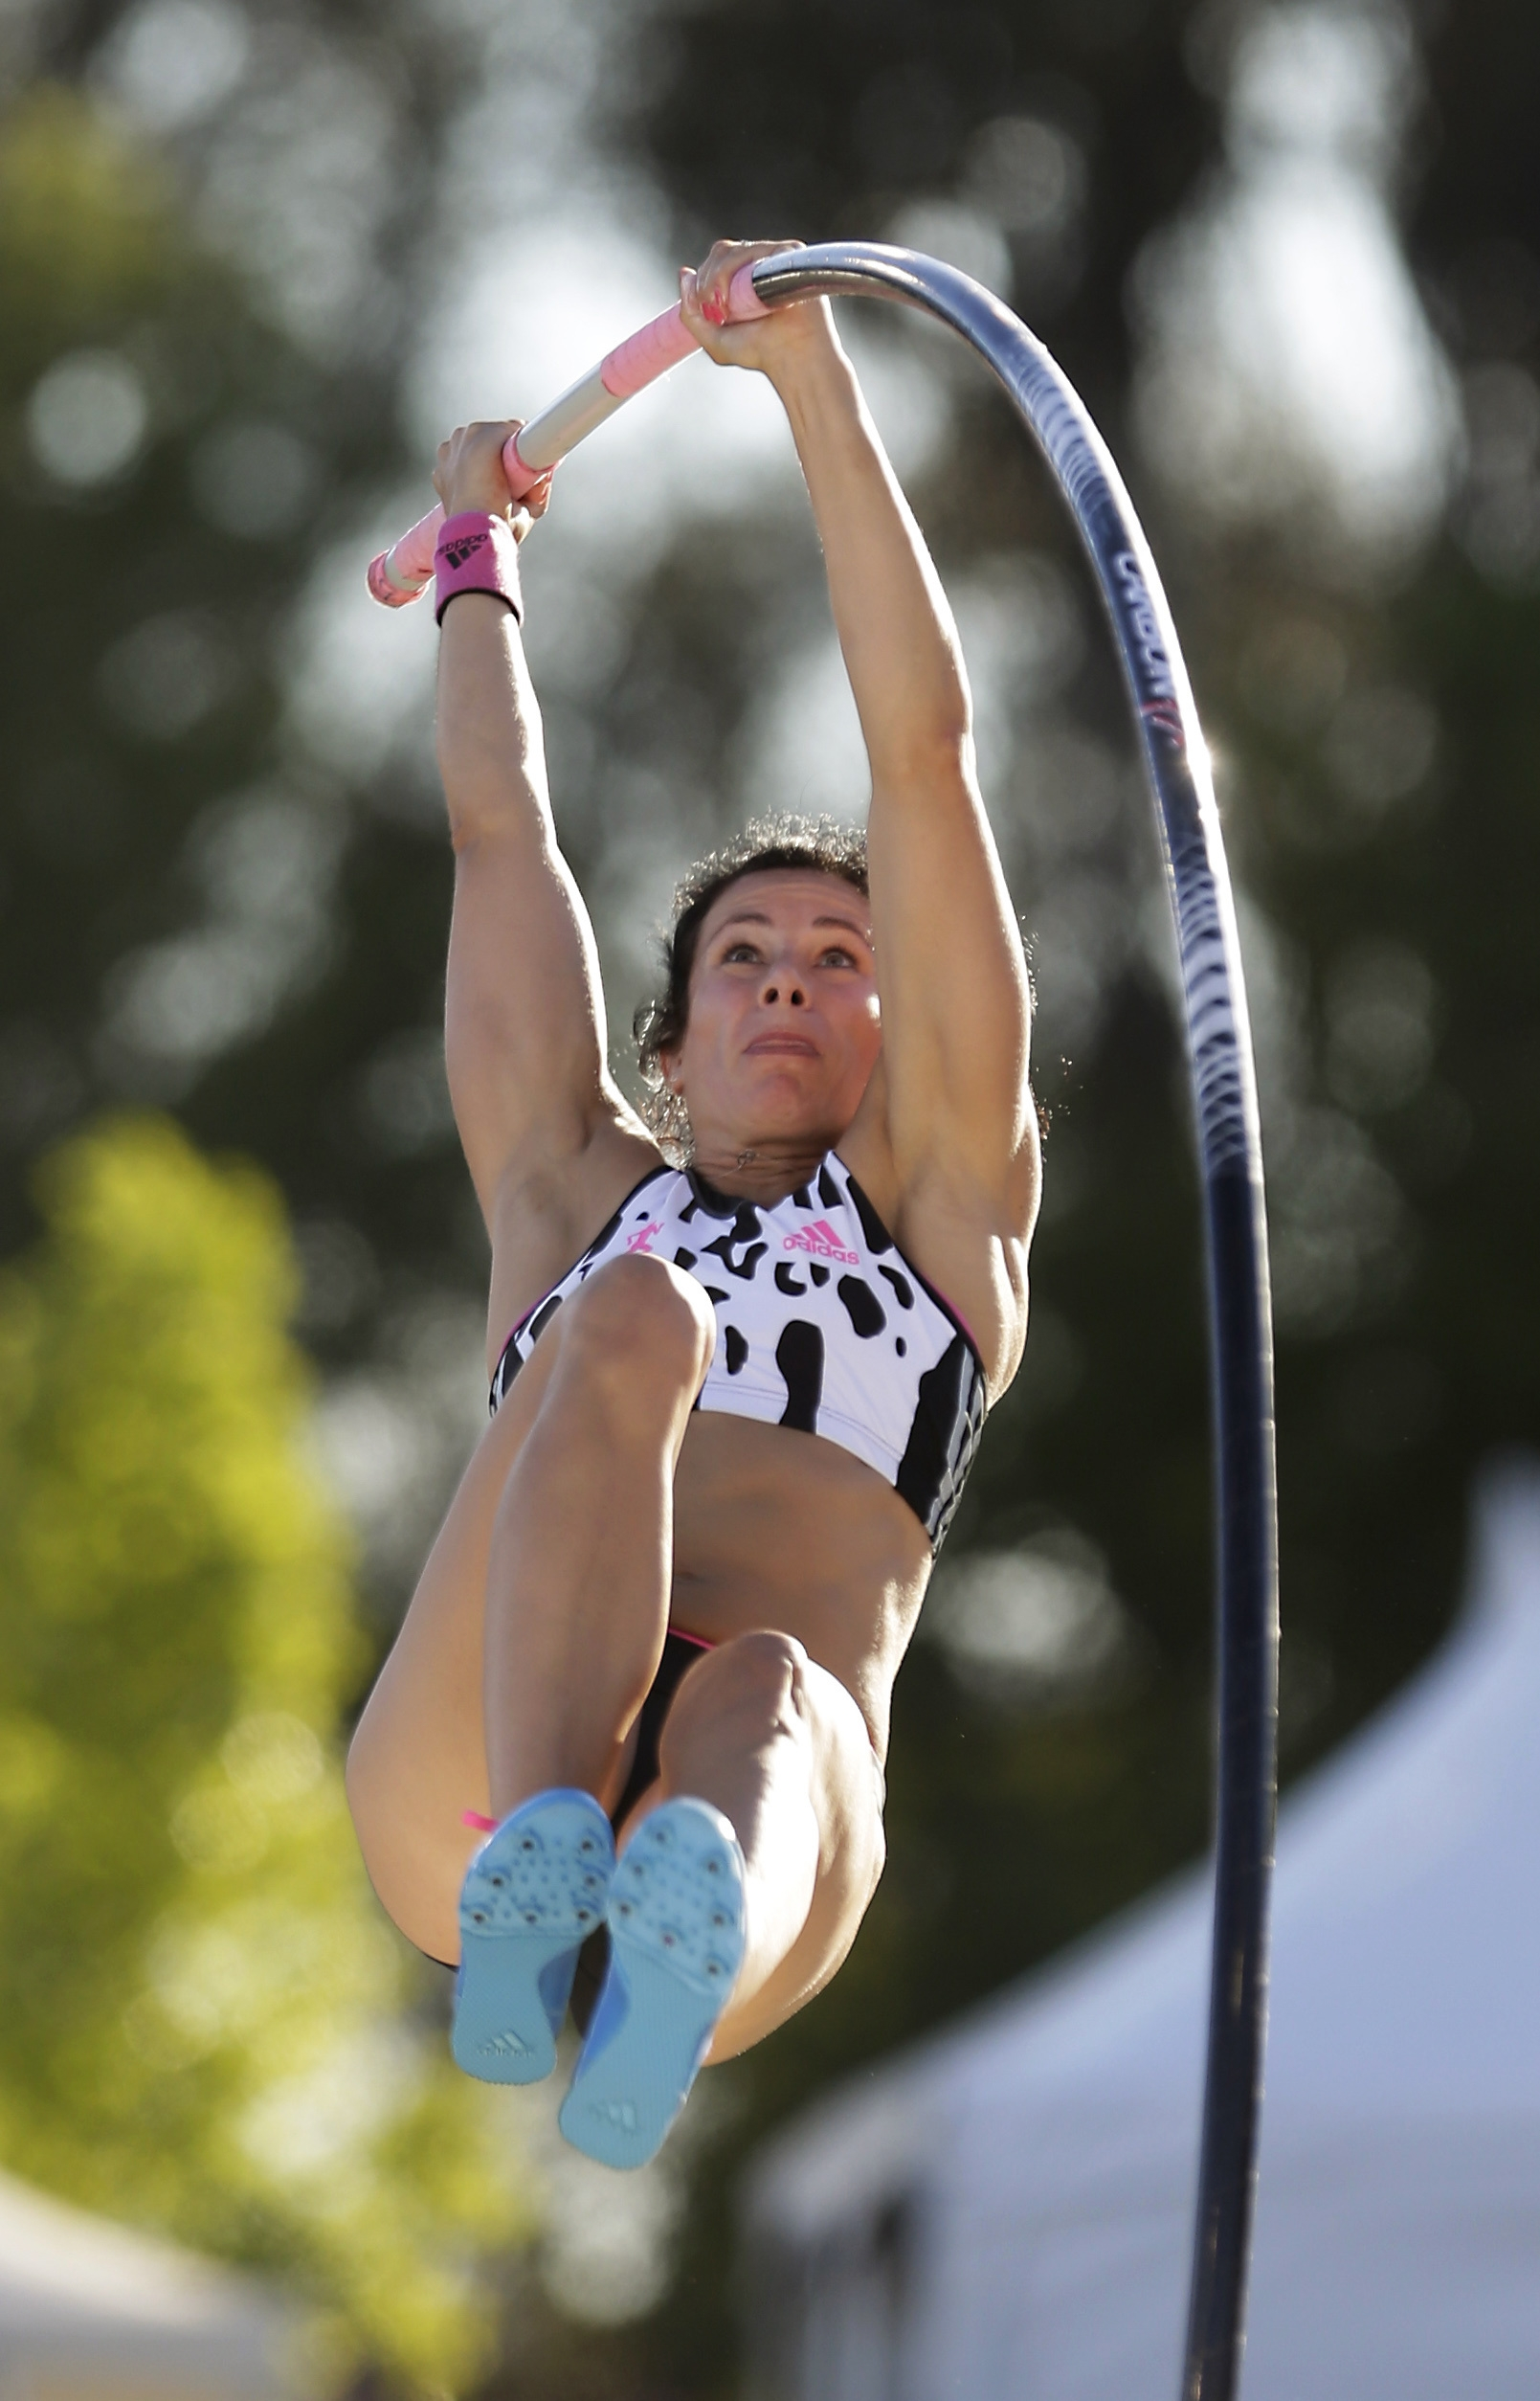 Fredonia native Jenn Suhr won her eighth U.S. Outdoor Track & Field Championship after easily clearing 15 feet, 1 inch.